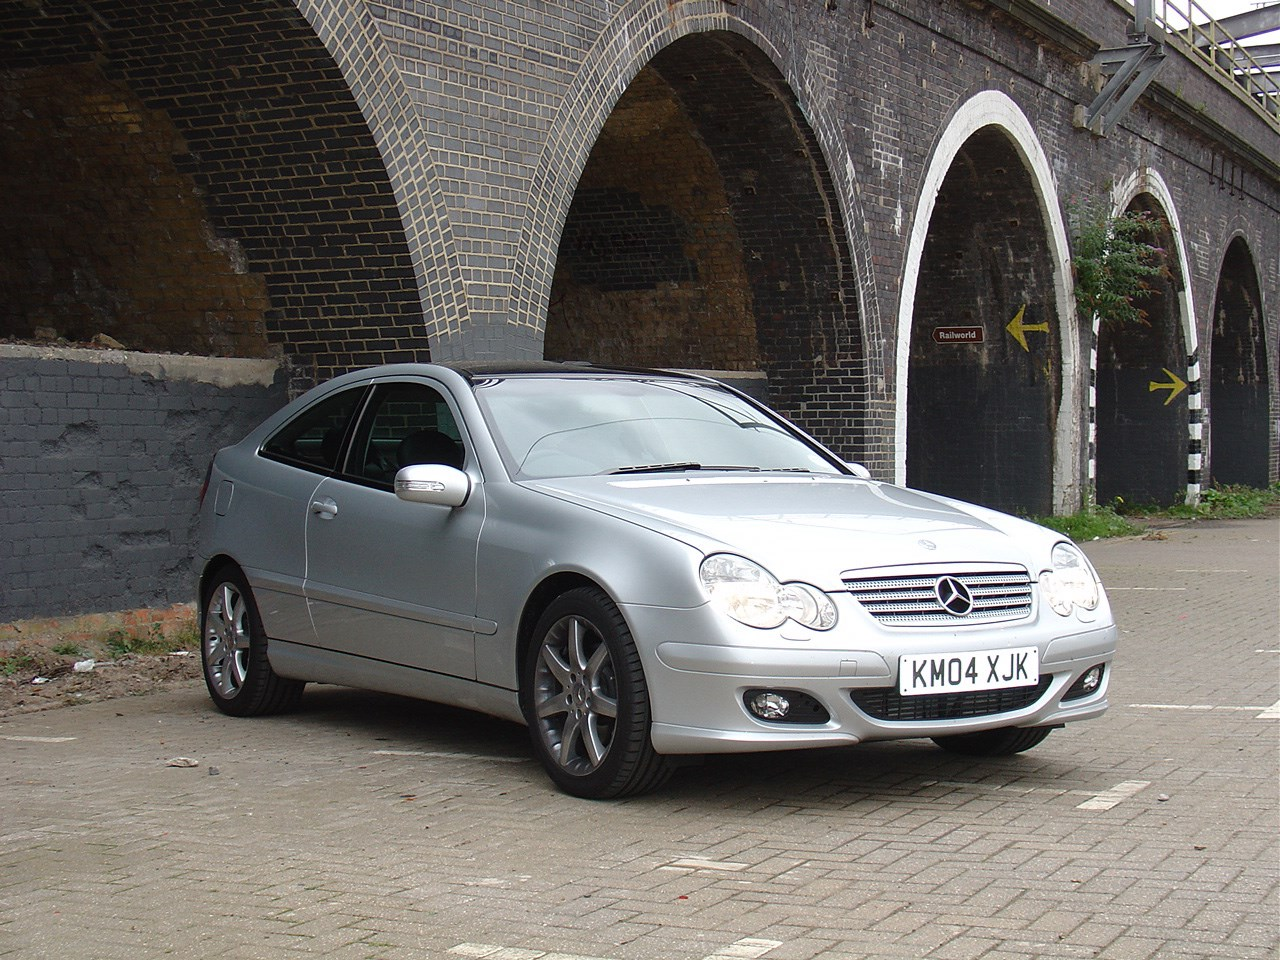 Used Mercedes-Benz C-Class Sports Coupe (2001 - 2008 ...